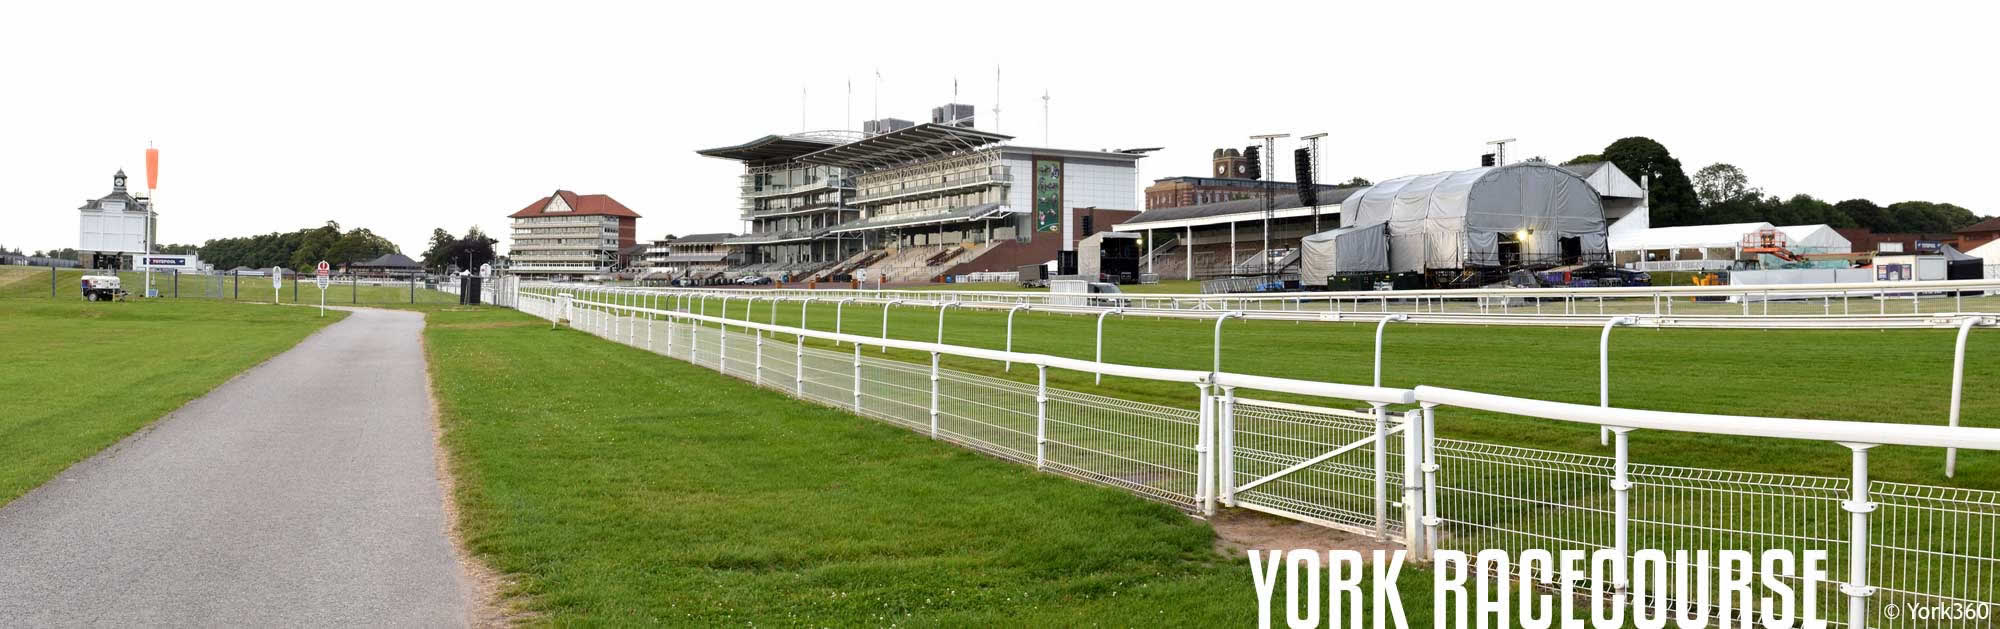 Hotels Near York Racecourse Uk